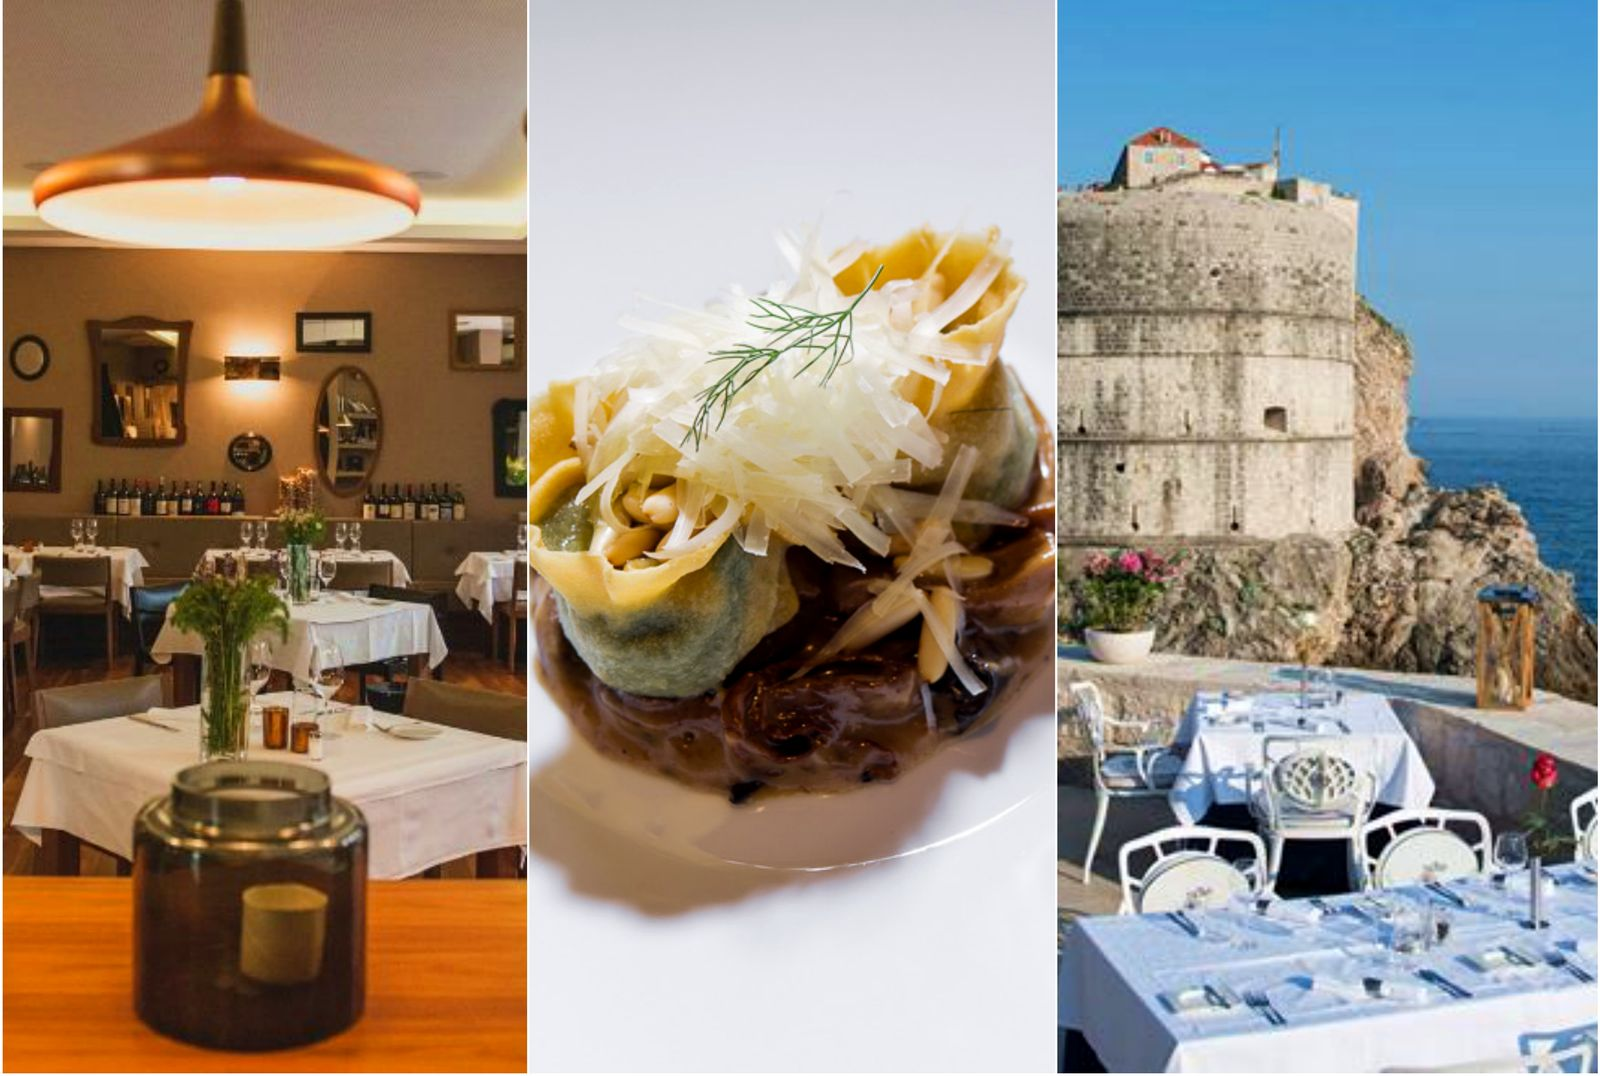 The Croatian Restaurants Which Made the 2017 Michelin Guide